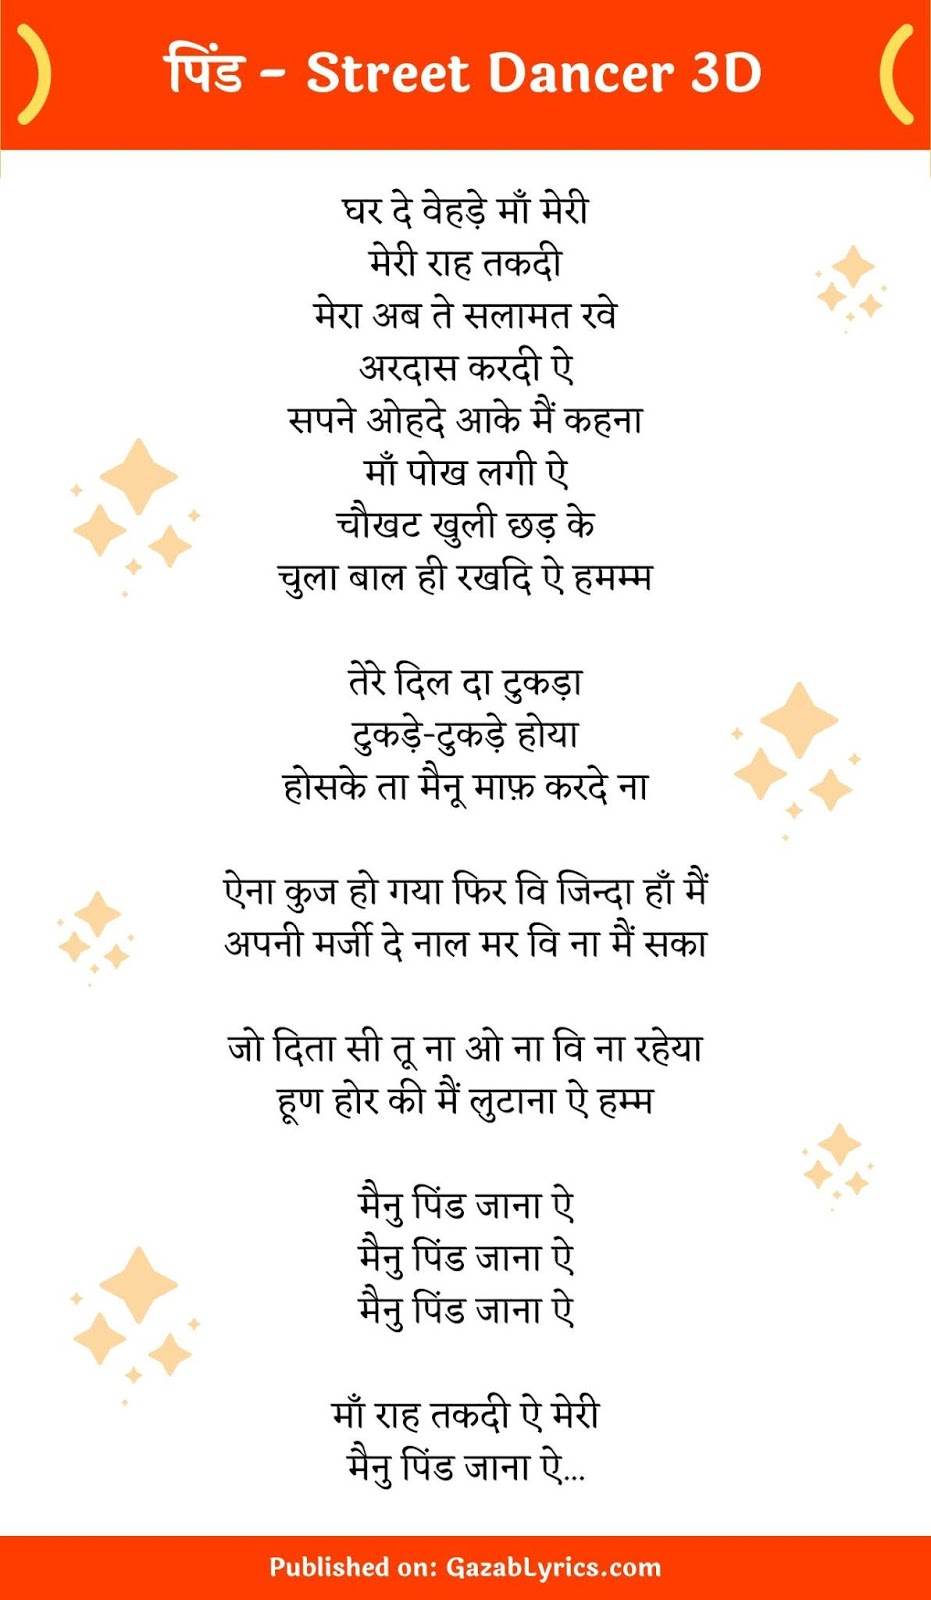 Pind song lyrics image